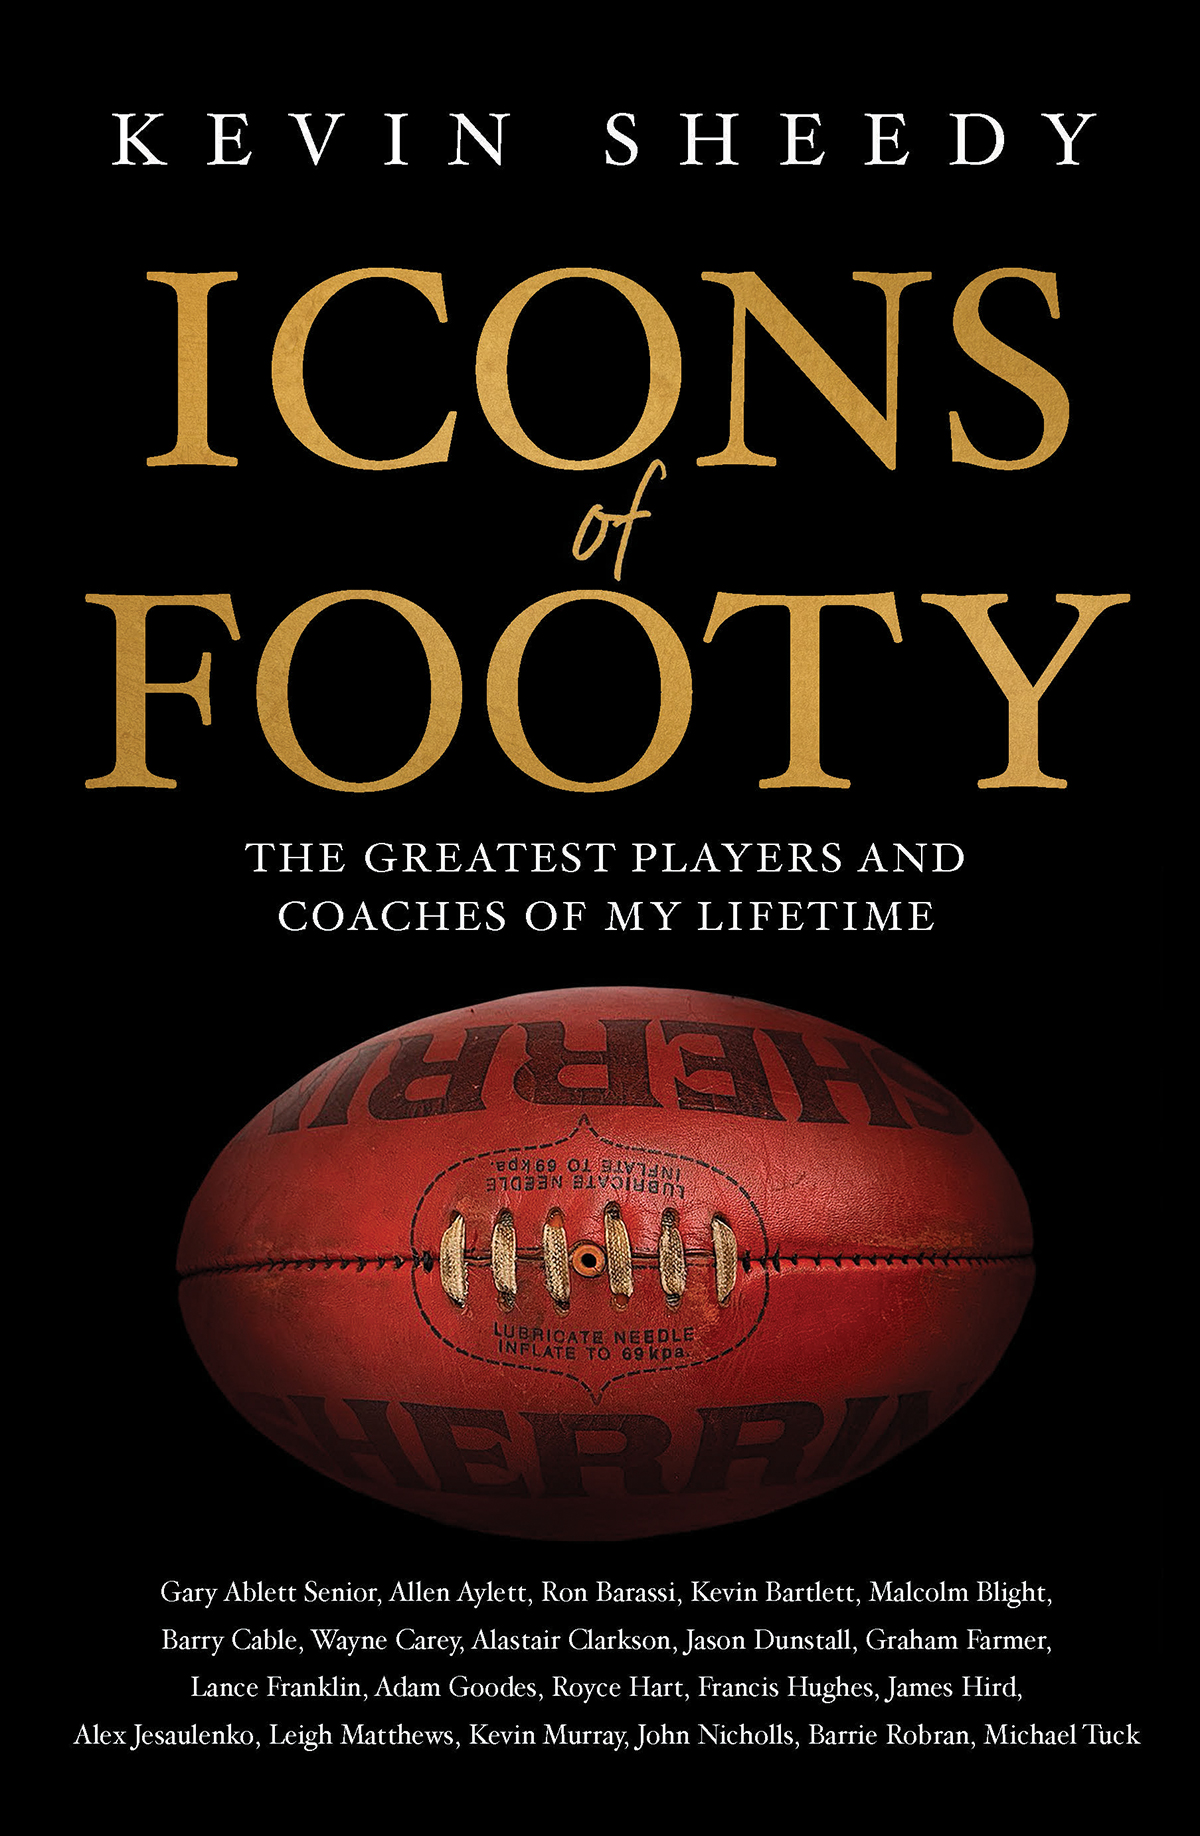 Icons of Footy Kevin Sheedy